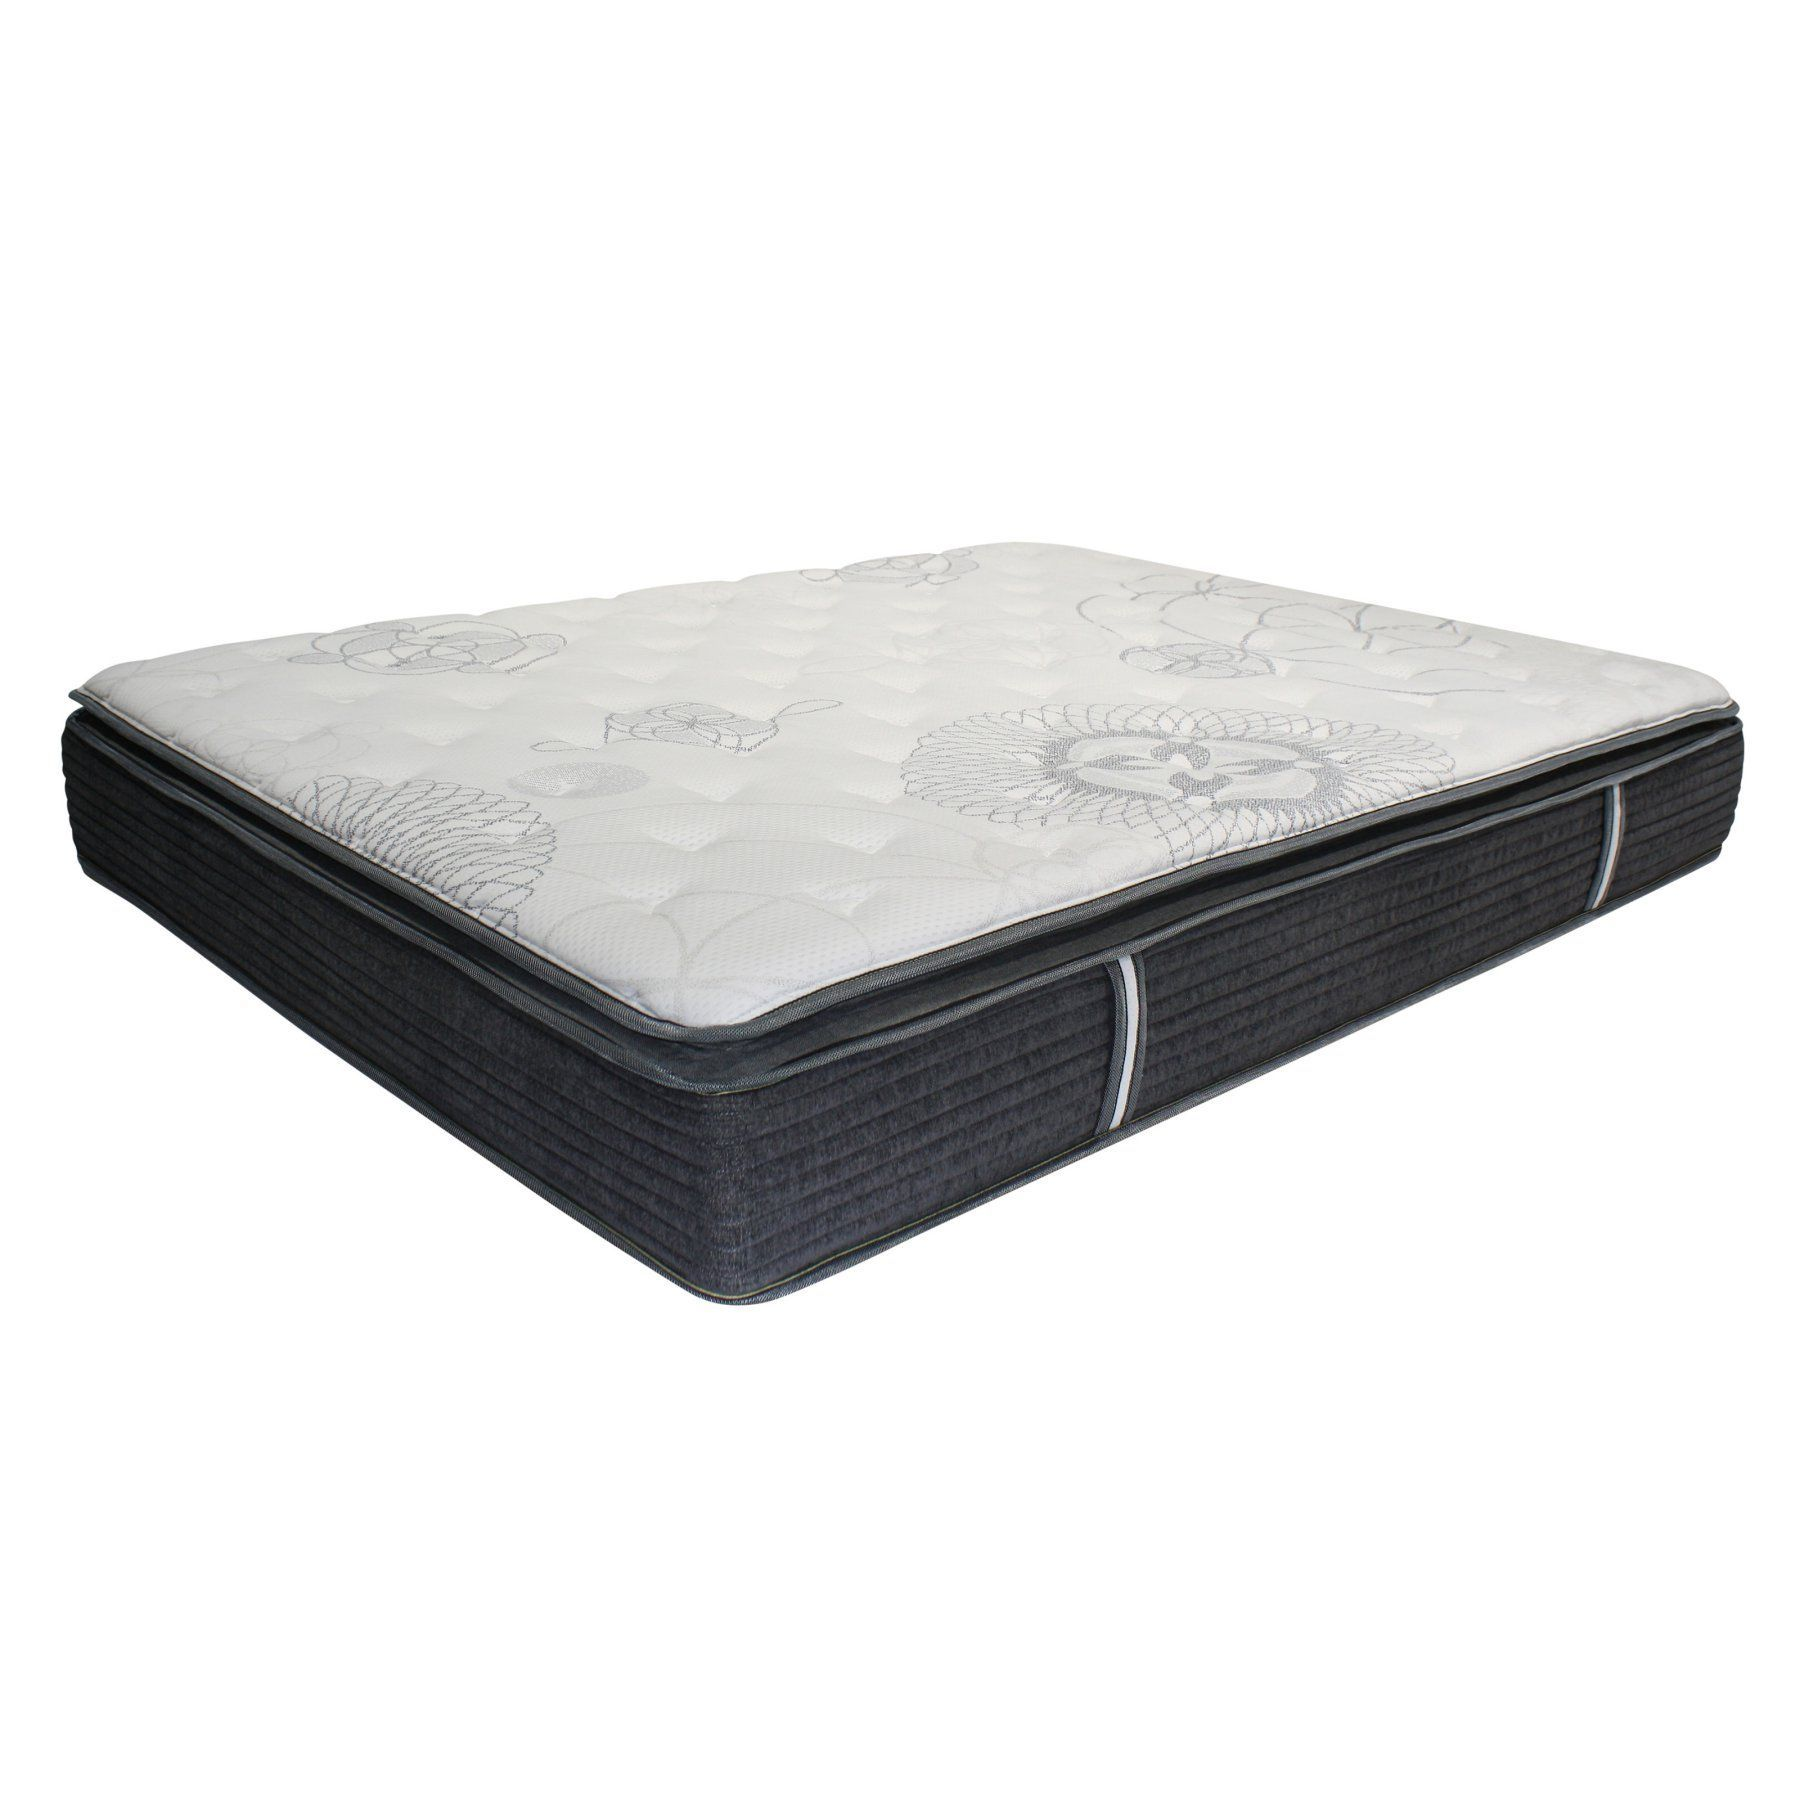 krishna traders is leading bonnell spring euro top mattress